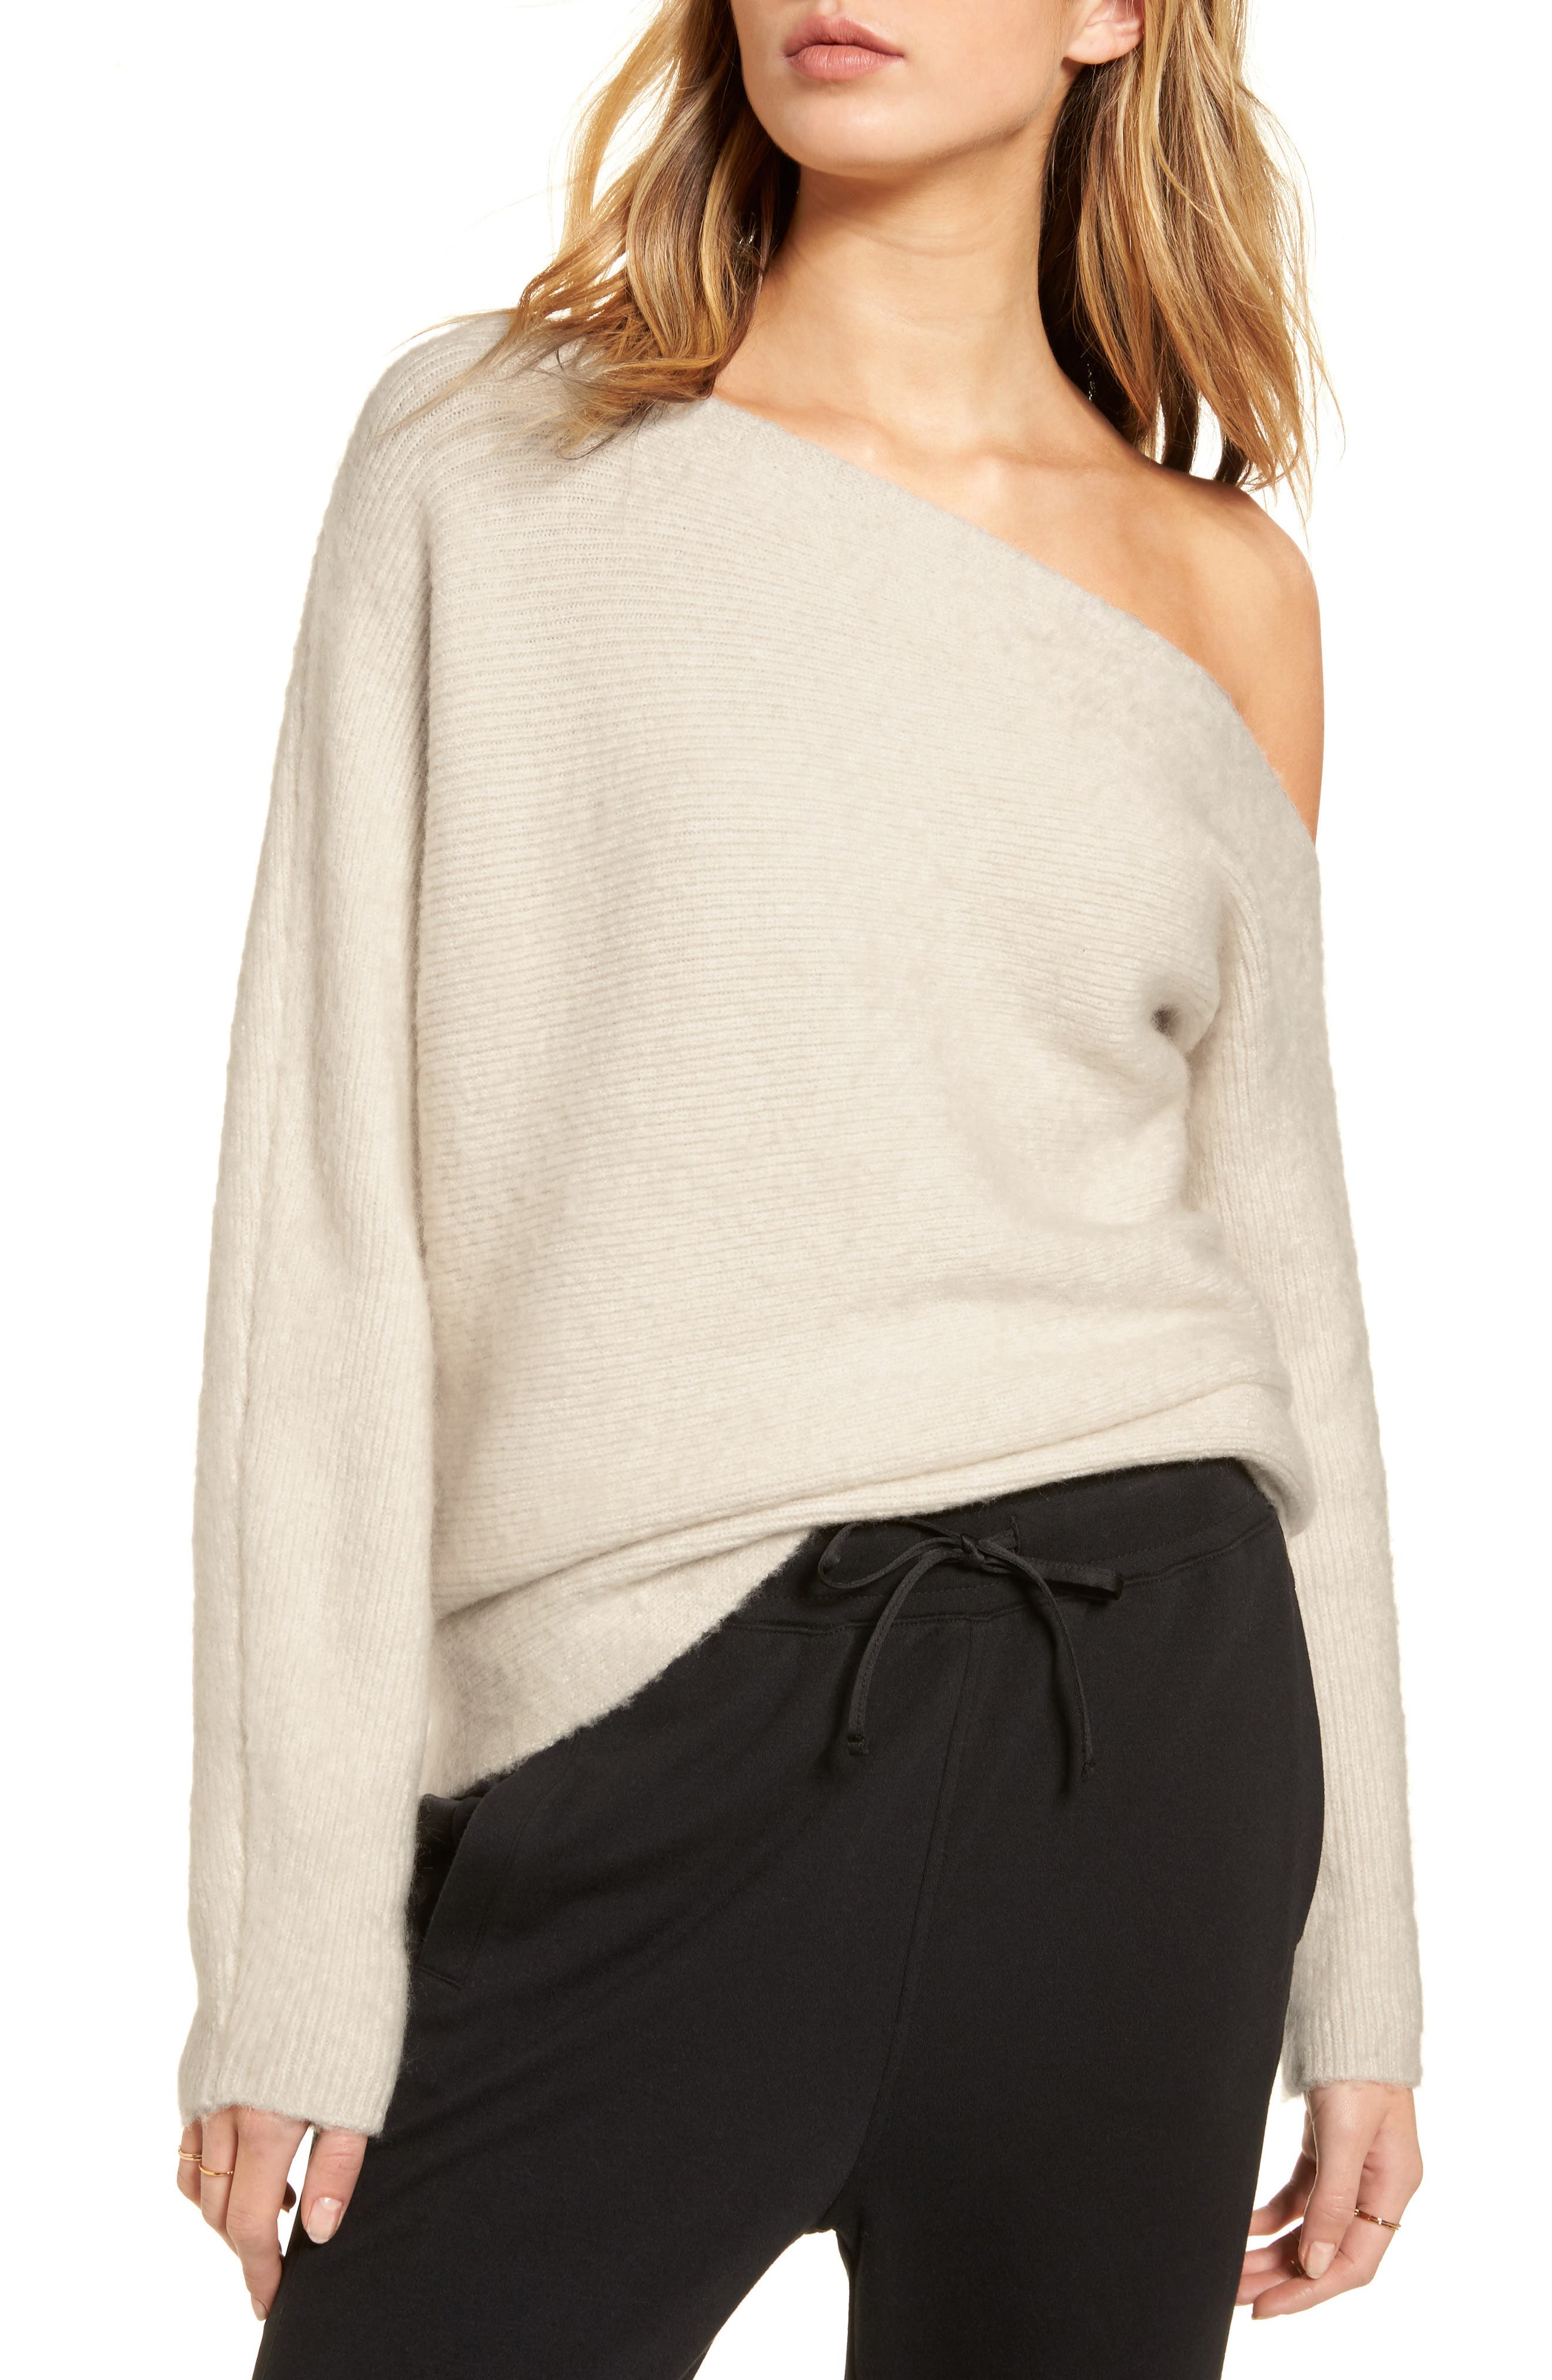 TREASURE & BOND,                             One-Shoulder Ribbed Sweater,                             Main thumbnail 1, color,                             BEIGE OATMEAL LIGHT HEATHER